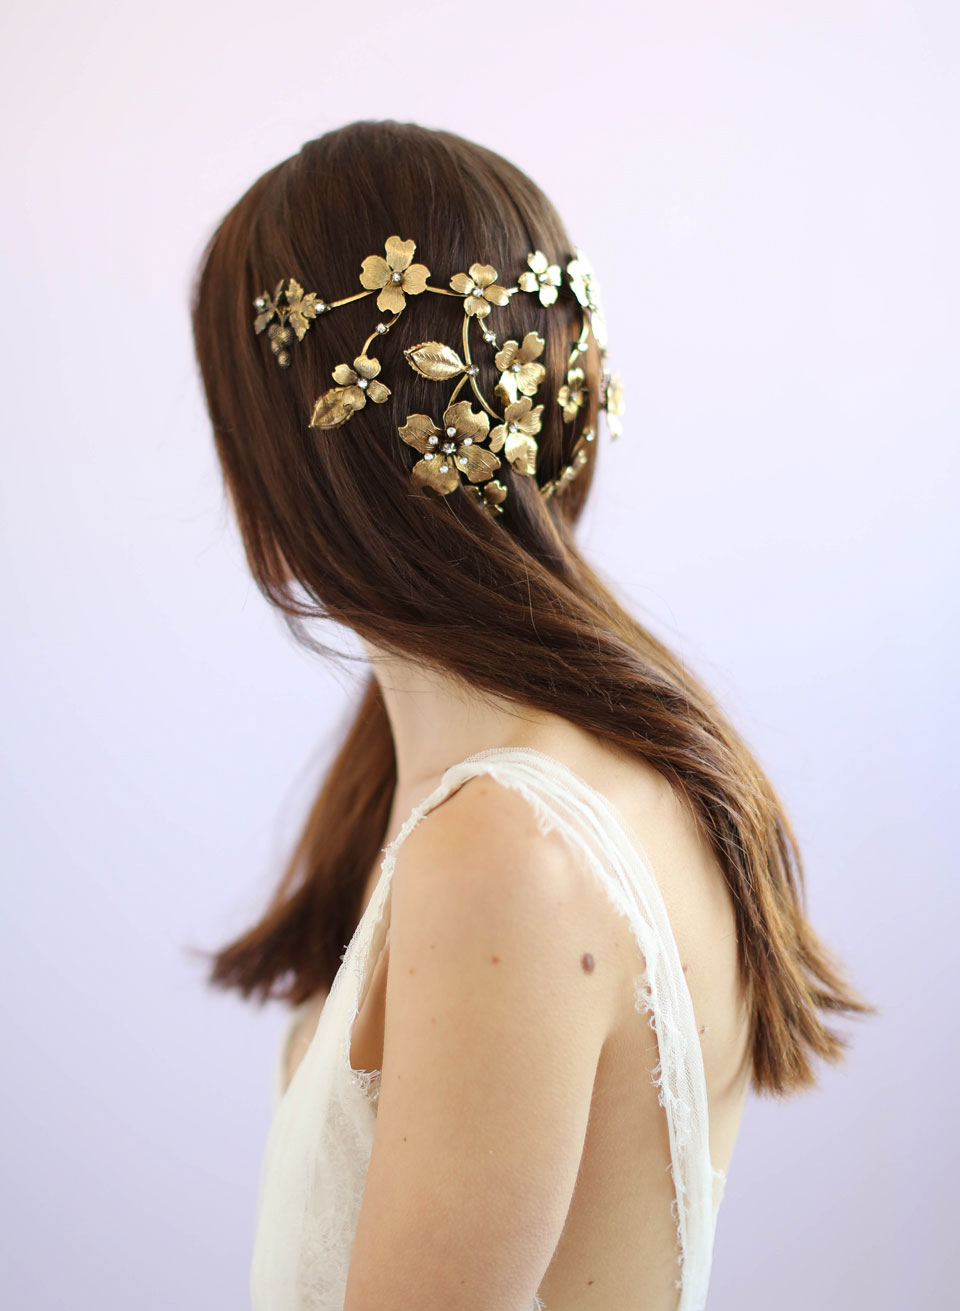 Introducing Twigs & Honey – Delightfully Feminine Bridal Adornments